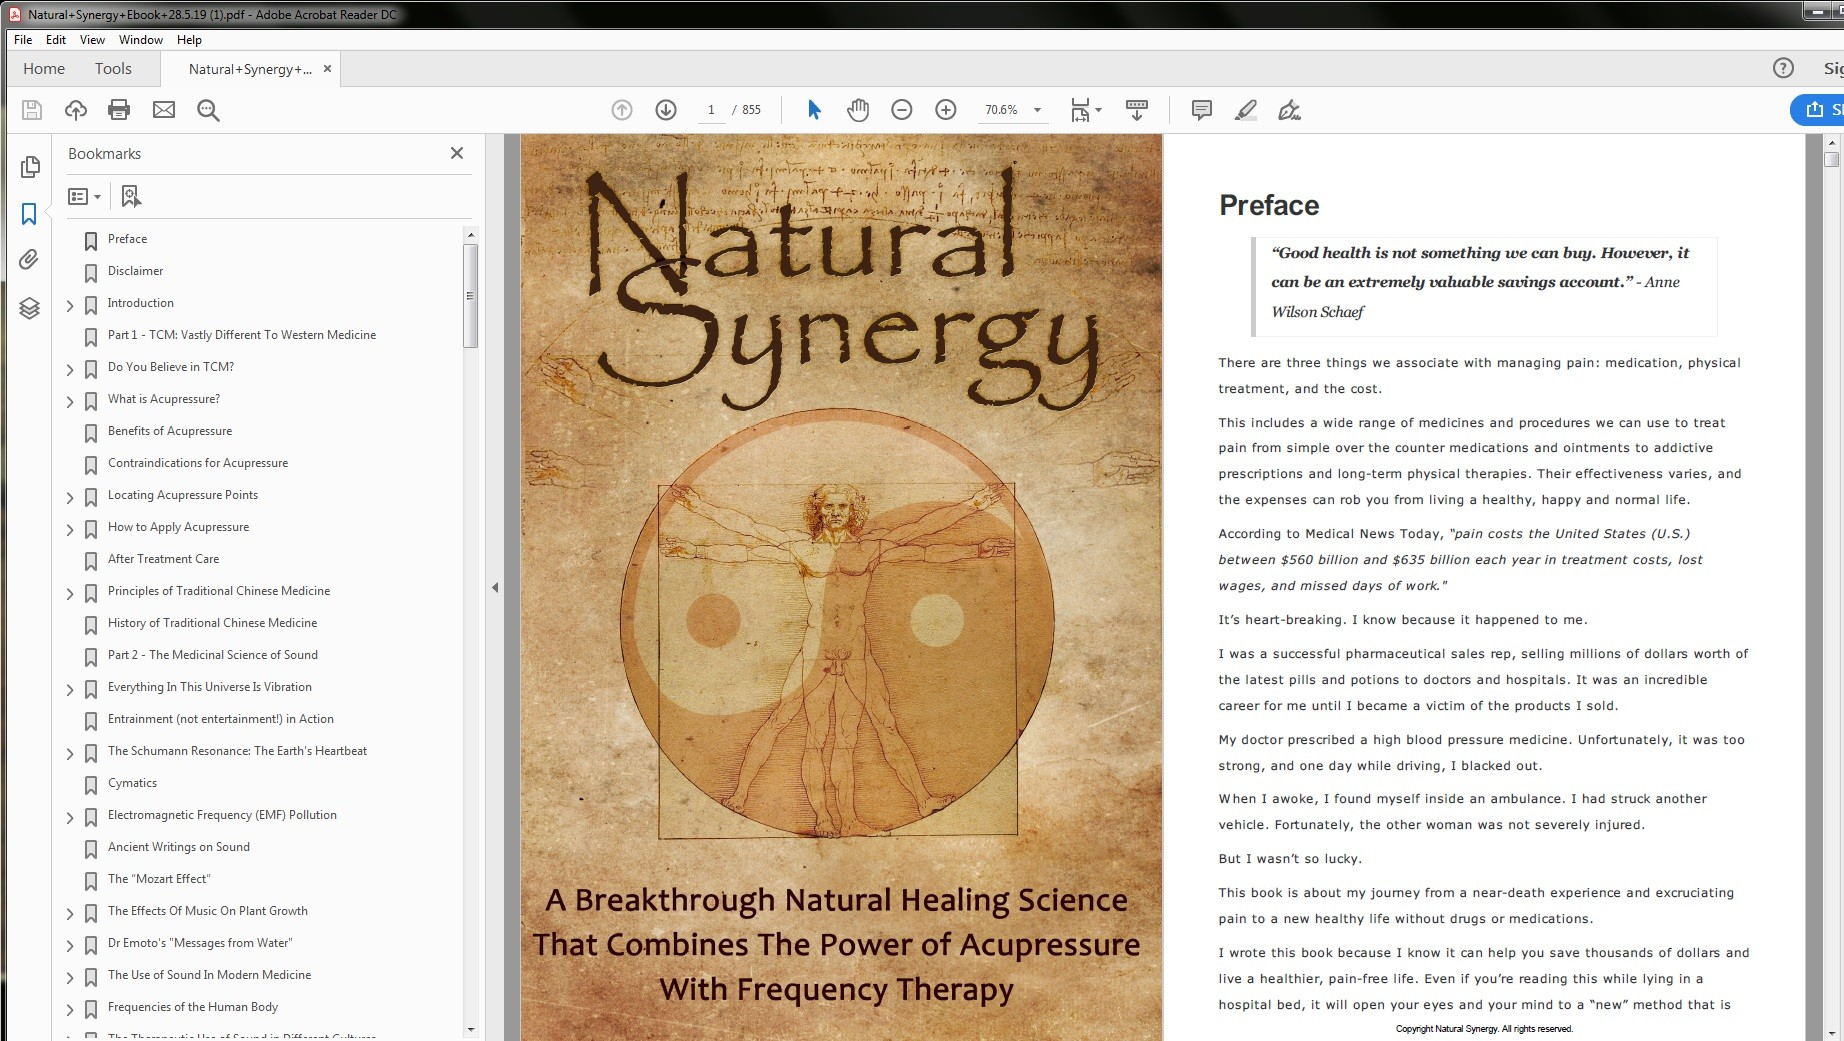 Natural Synergy Table of Contents